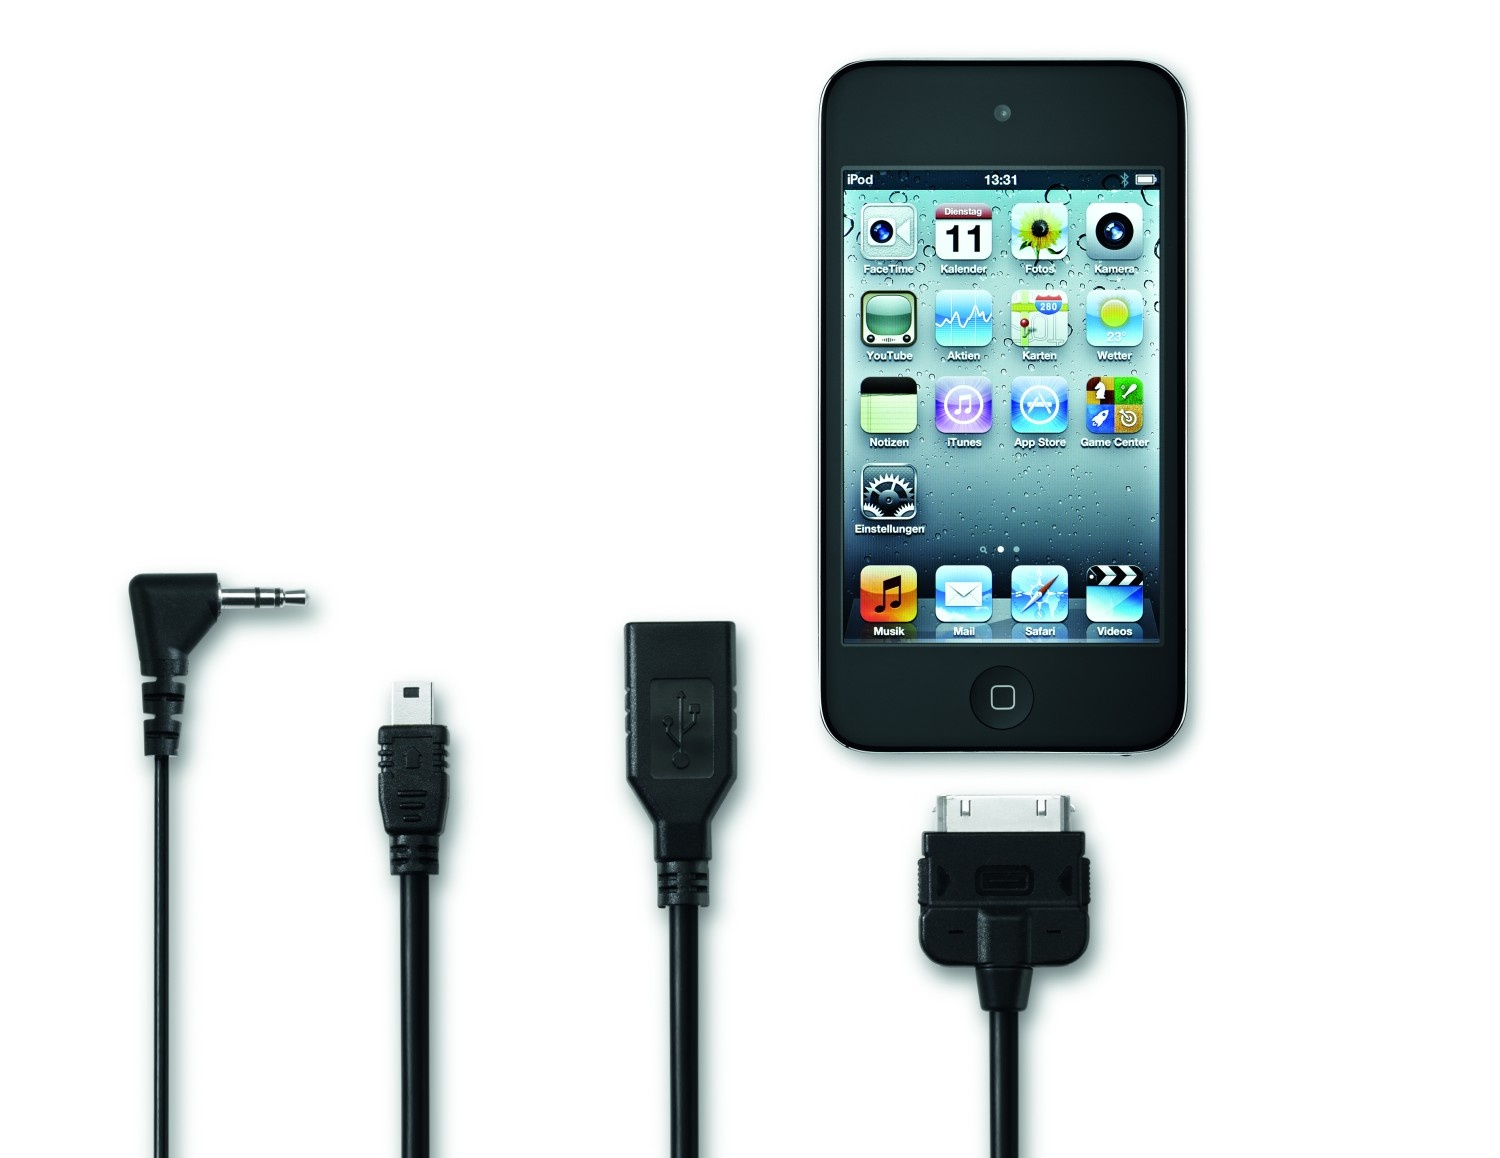 Adaptador para enchufe multimedia Media-In iPod, versión alargada 25 cm - Ítem1